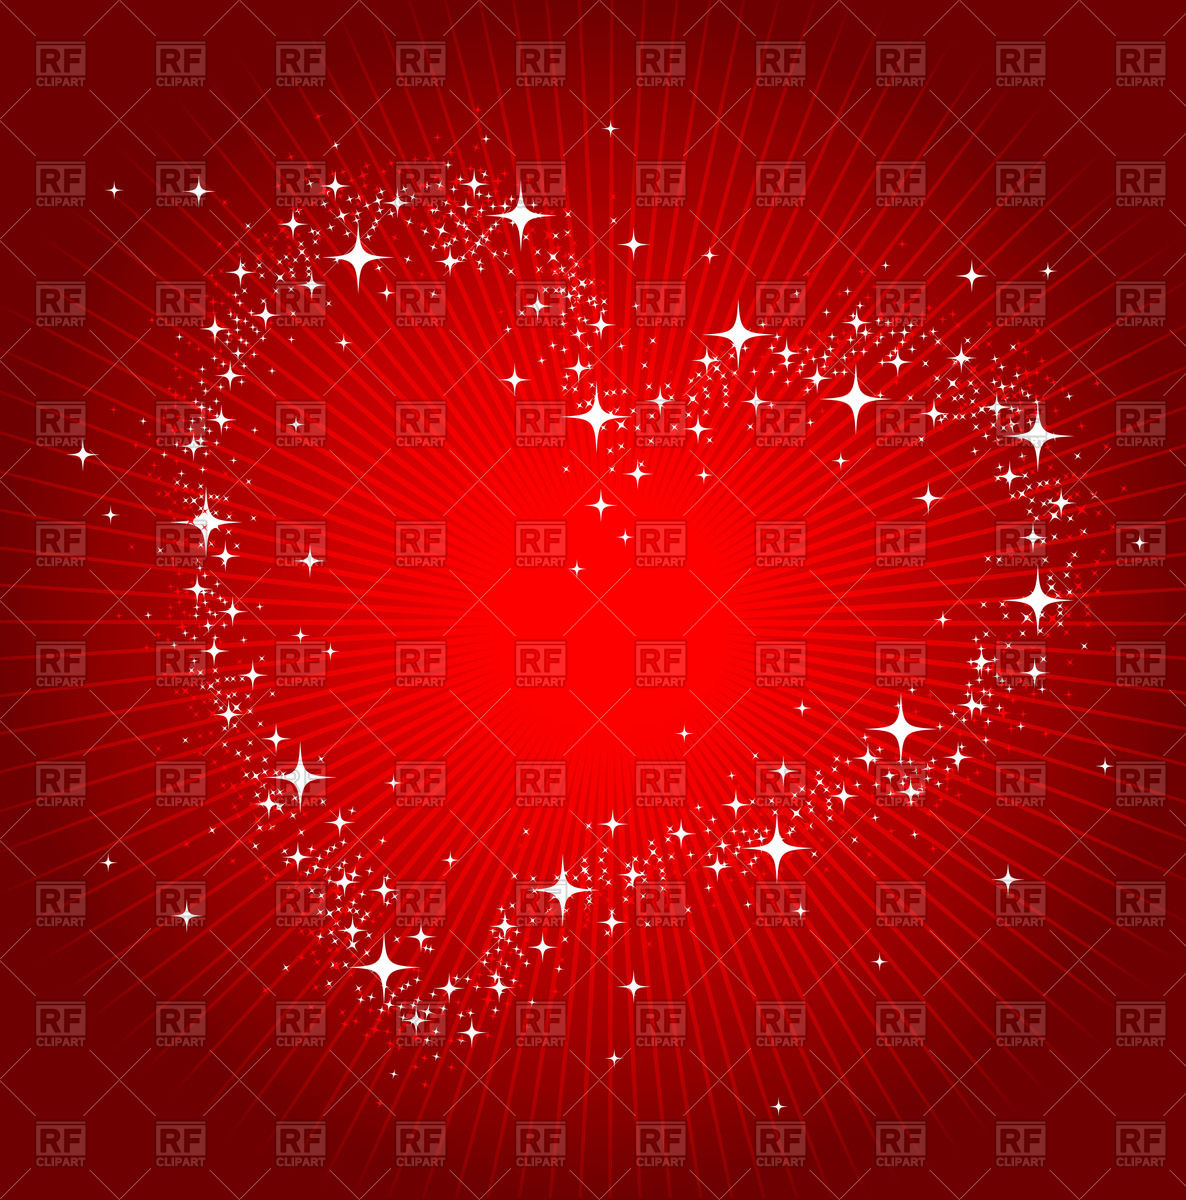 Card clipart st valentine Collection day Free card St